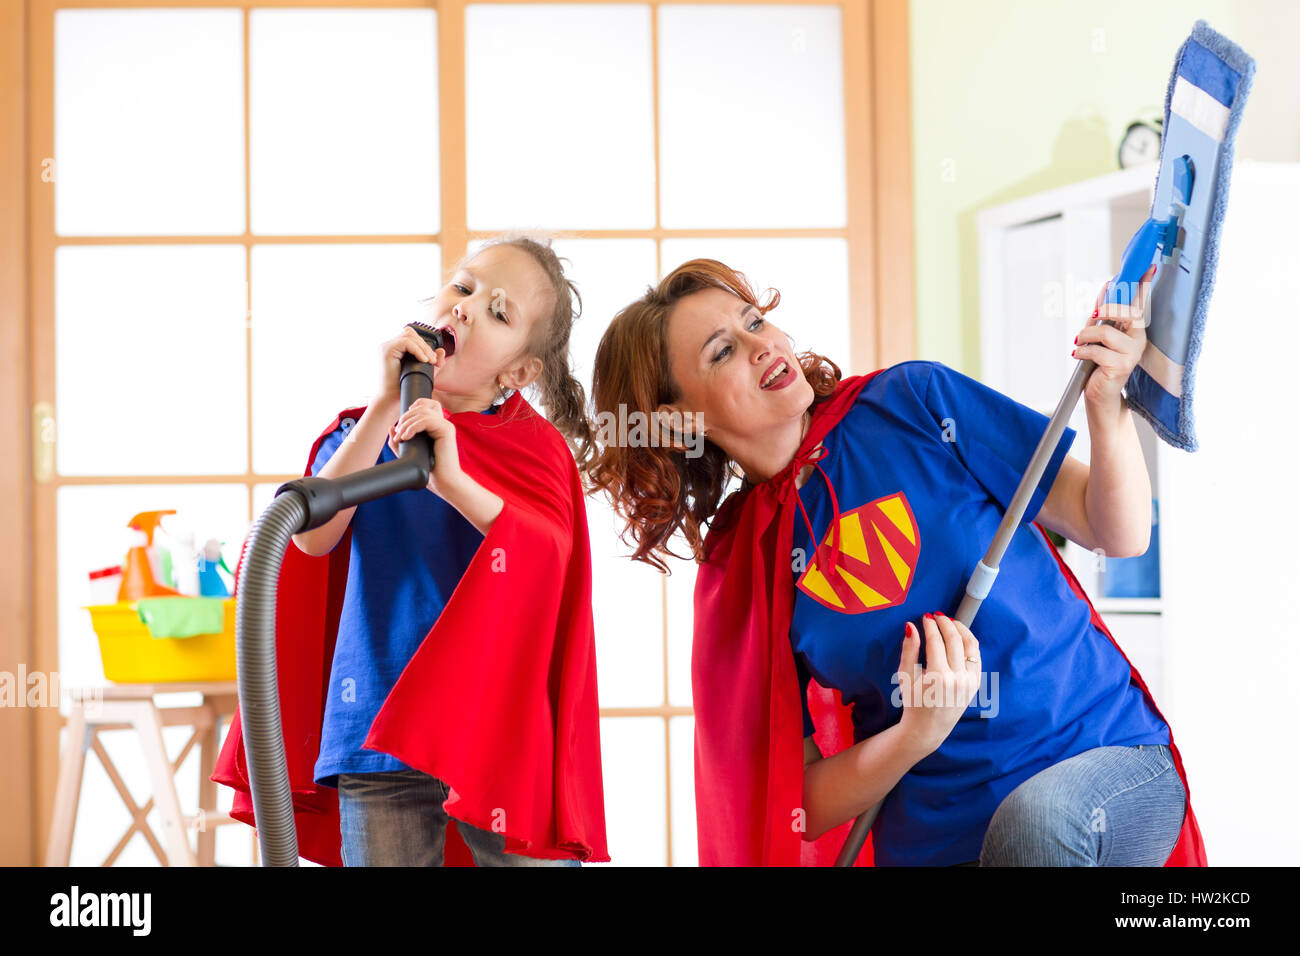 Preschooler girl and her mother dressed like superheroes. Middle-aged woman and kid playing while doing cleanup - Stock Image